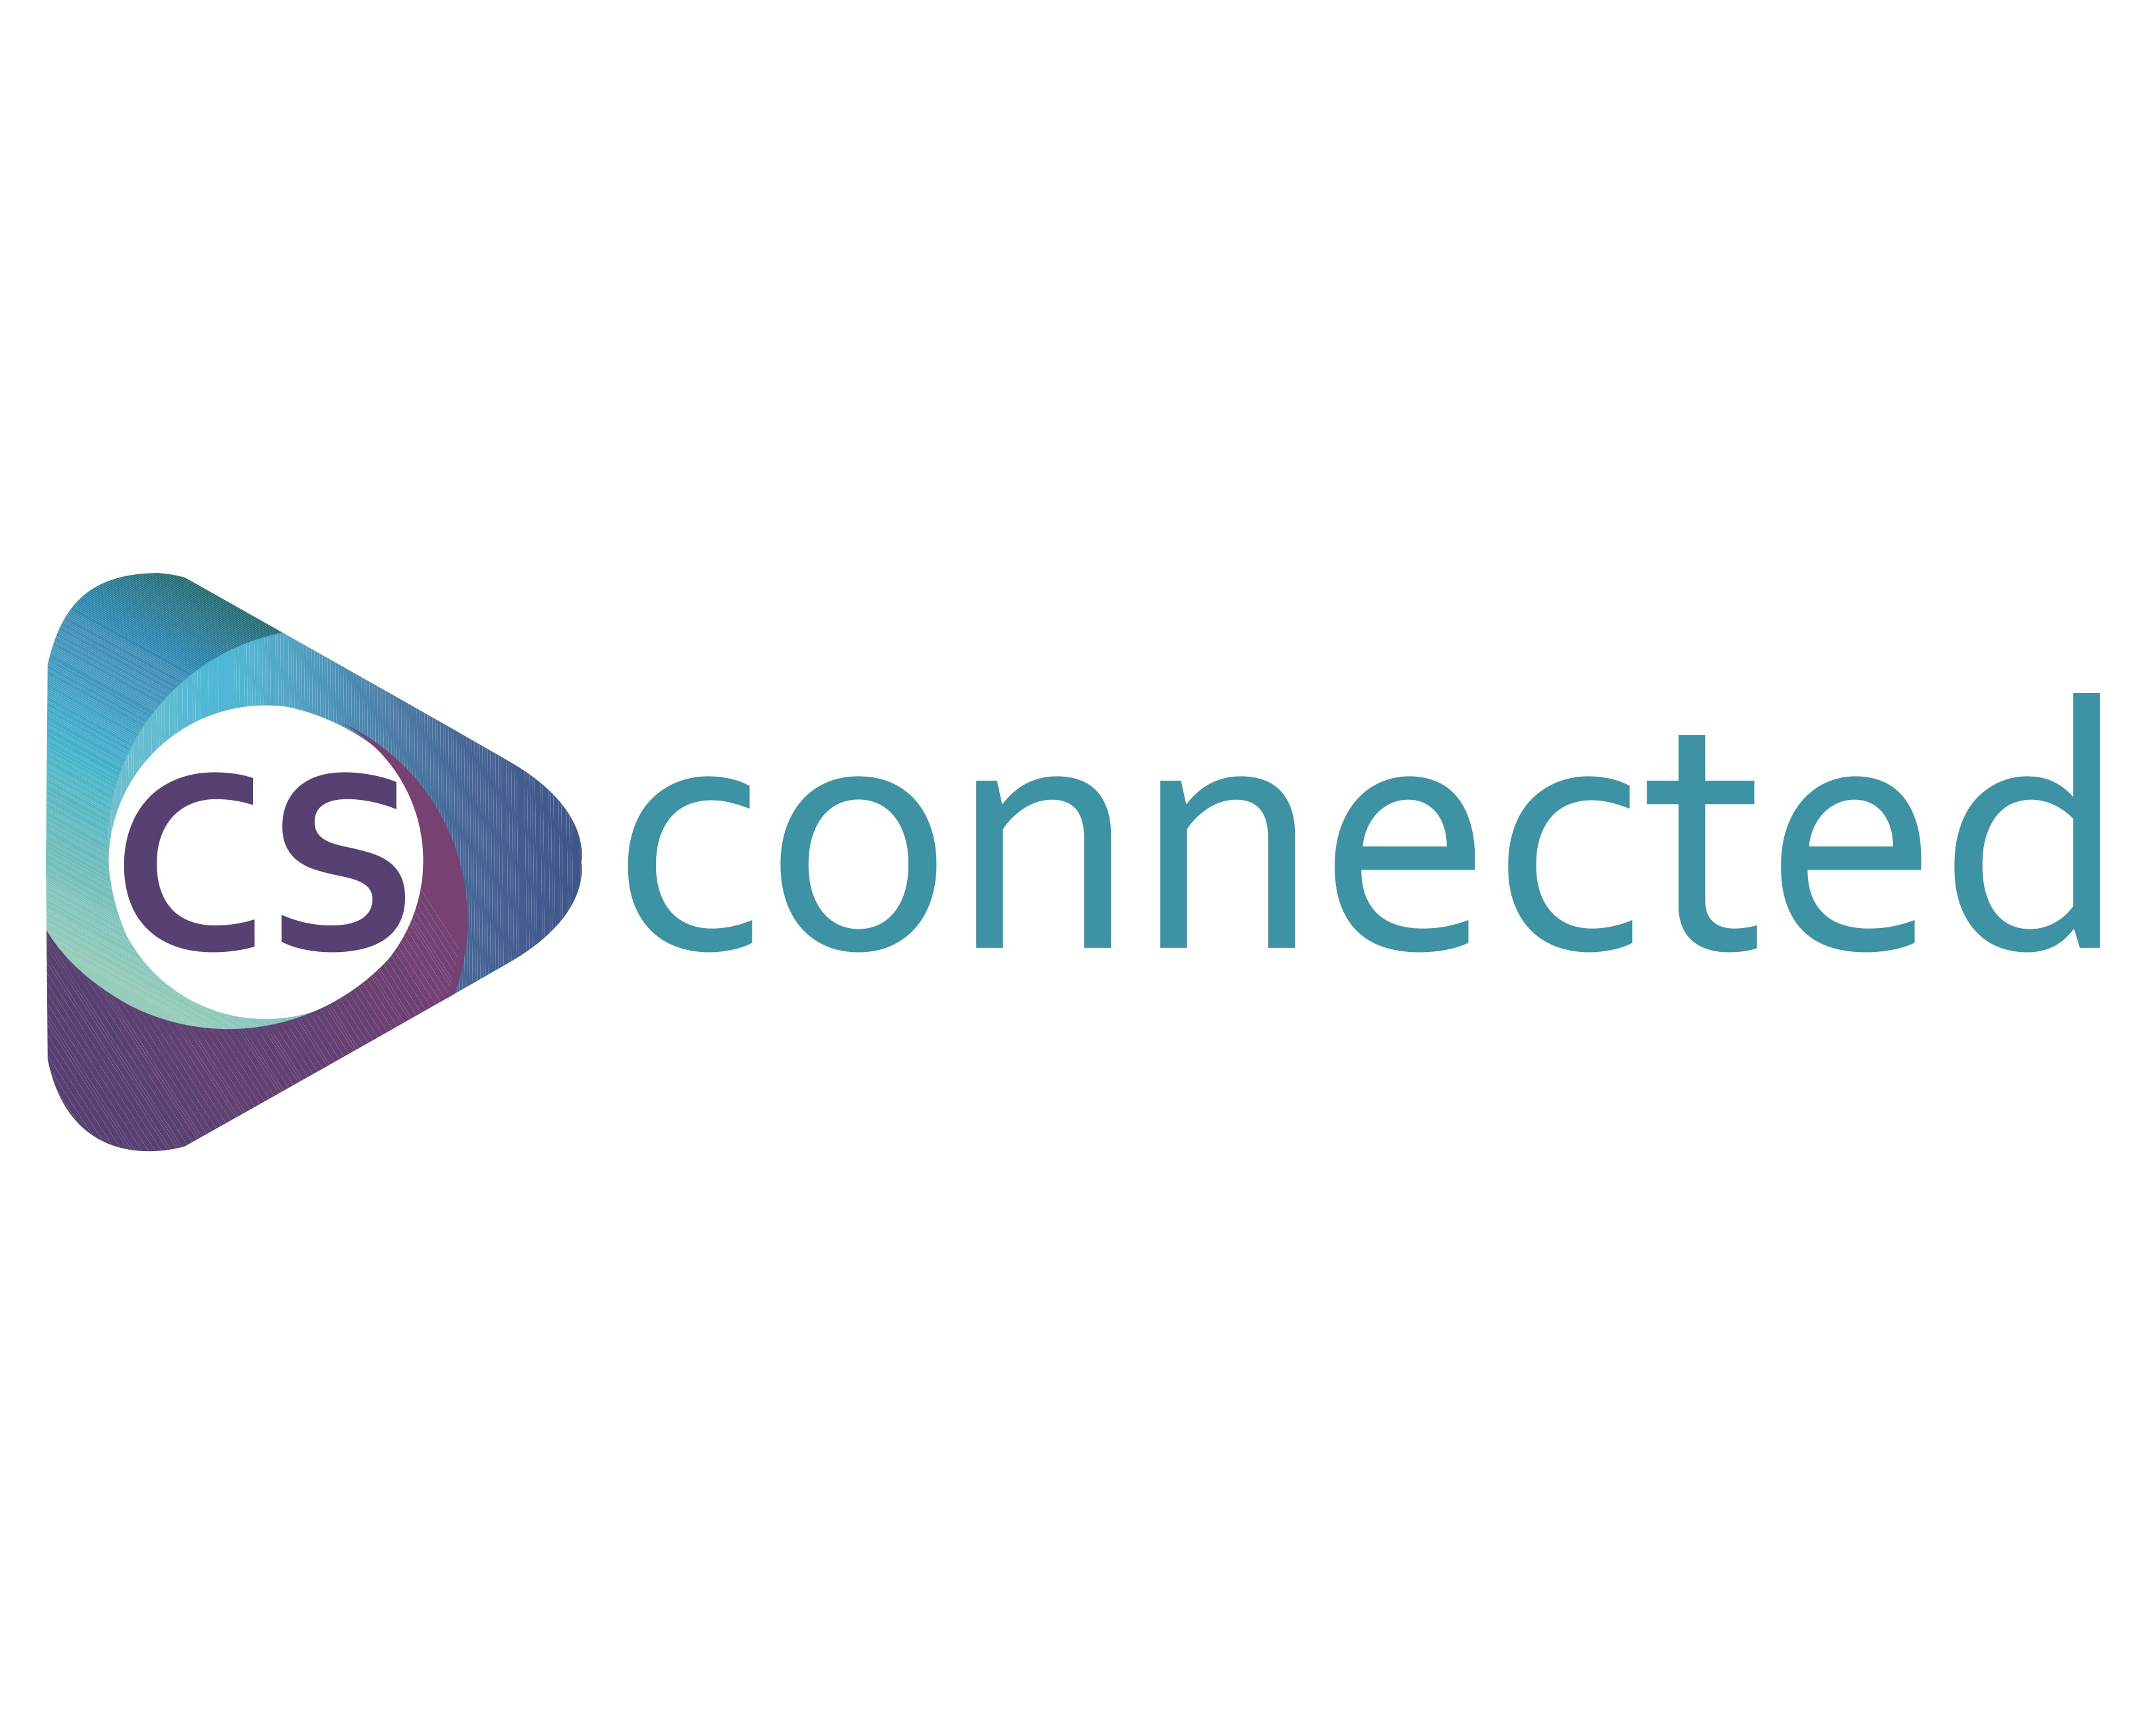 CS Connected